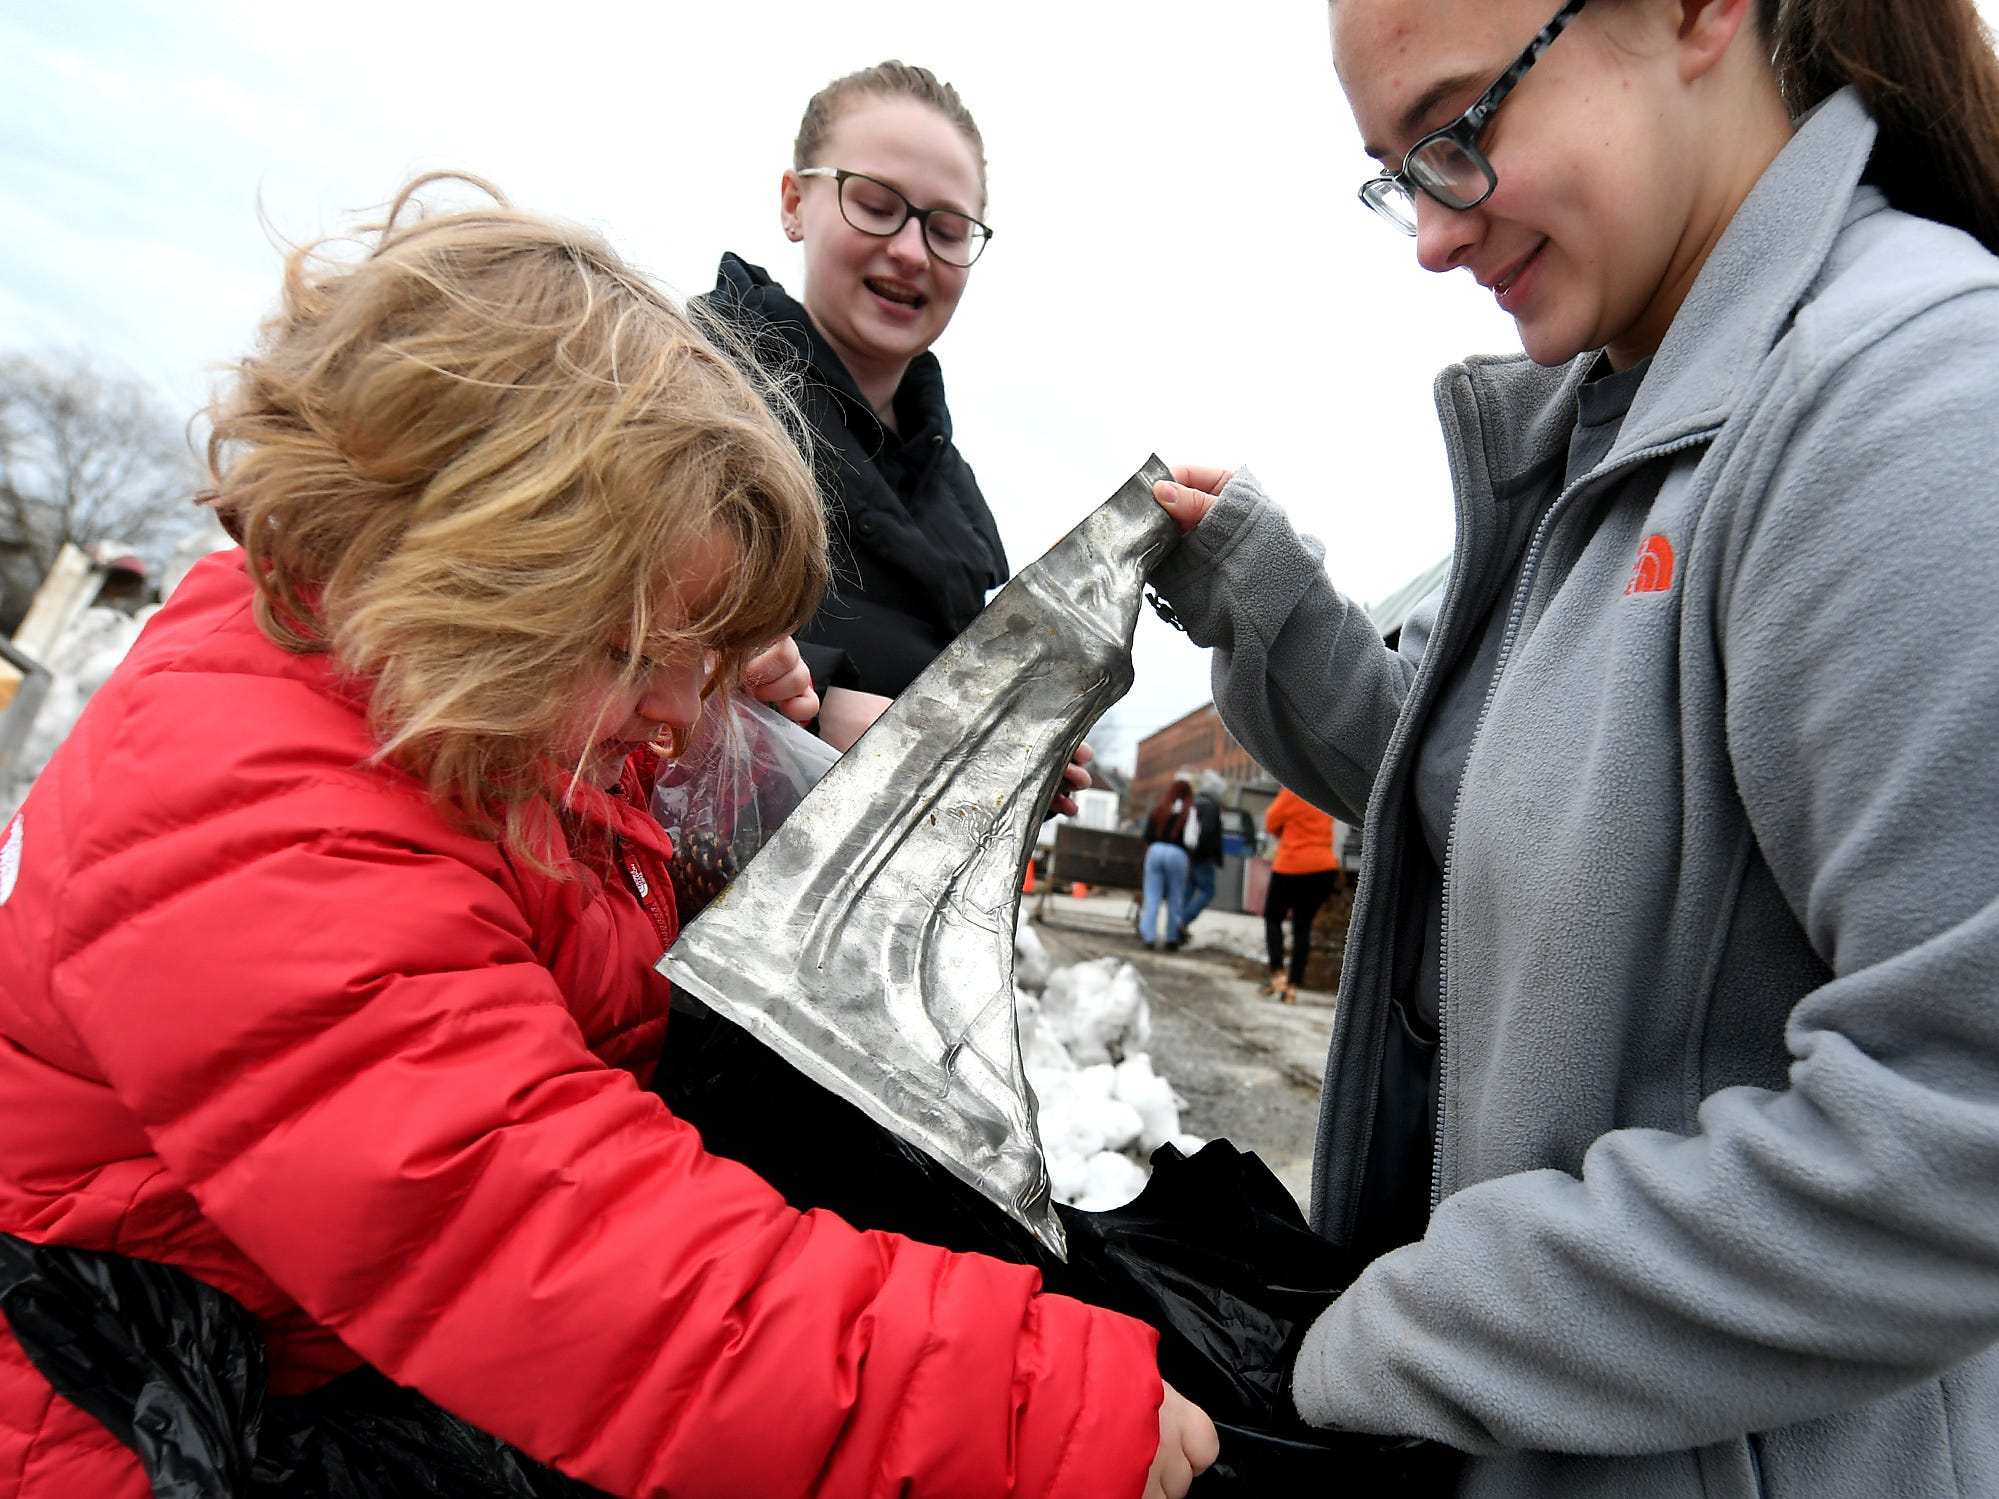 Central High School sophomores Lea Wilhelm, center, Emma Crumling and Lea's sister Brynlee Dietrich, left, collect items for the sophomore's entry in the York County Solid Waste Authority Recycled Art Contest during Picker Dayat the architectural salvage warehouse Refindings in York City Saturday, Feb. 23, 2019. The waste authority is sponsoring the fifth annual contest for York County high school students to promote recycling and celebrate Earth Day. Students create sculptures by mid-April from the materials donated by Refindings and the contest exhibit will be on display in the Marketview Arts Gallery, 37 W. Philadelphia St., beginning Sunday, April 14. Contest winners will be announced there during an awards event April 18. Bill Kalina photos